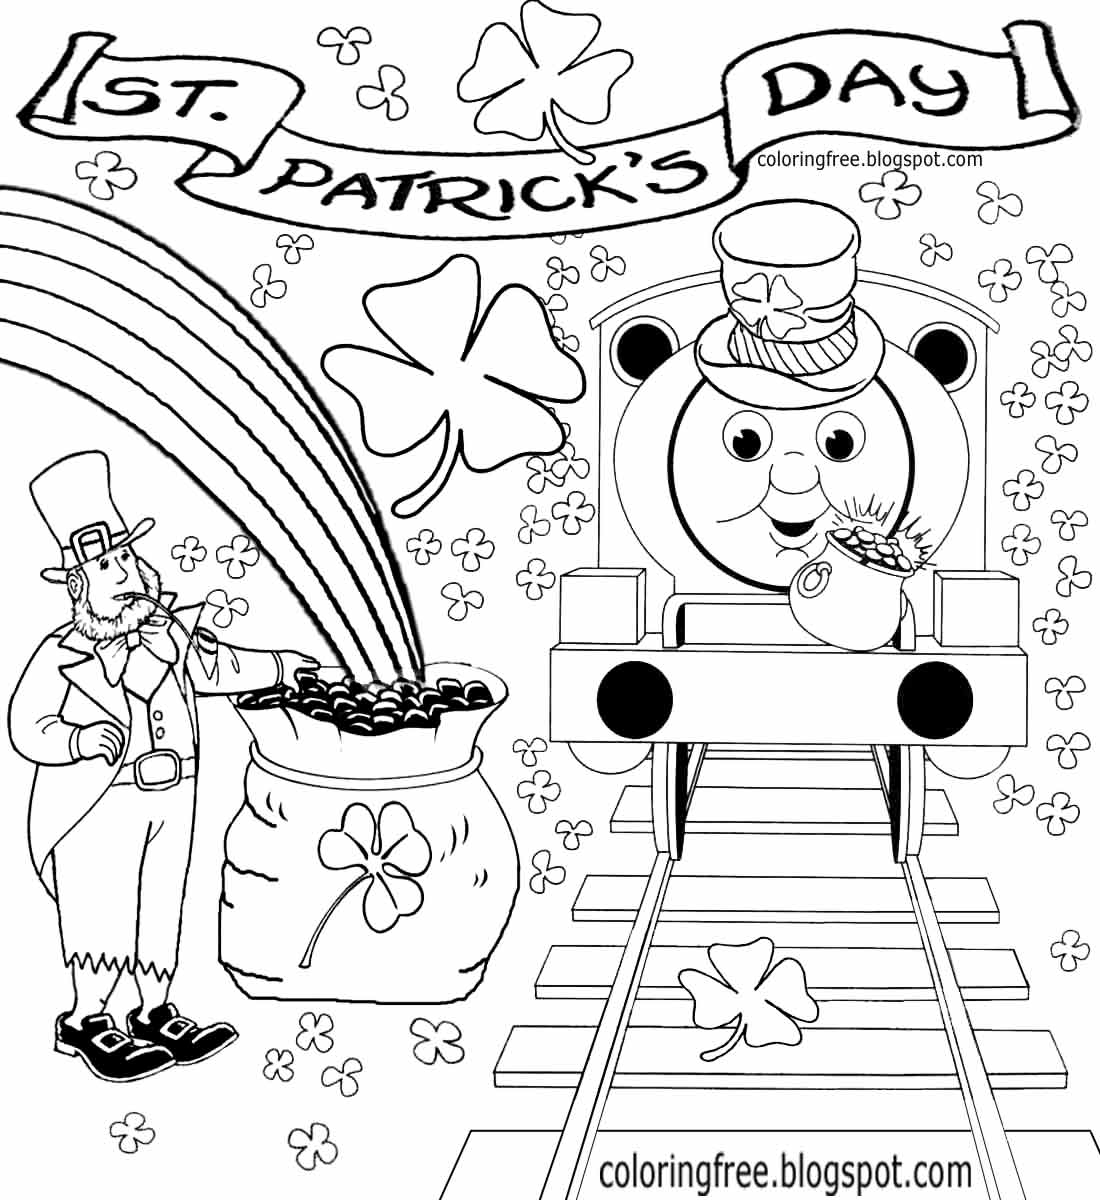 27 St Patty\'s Day Coloring Pages Compilation | FREE COLORING PAGES ...